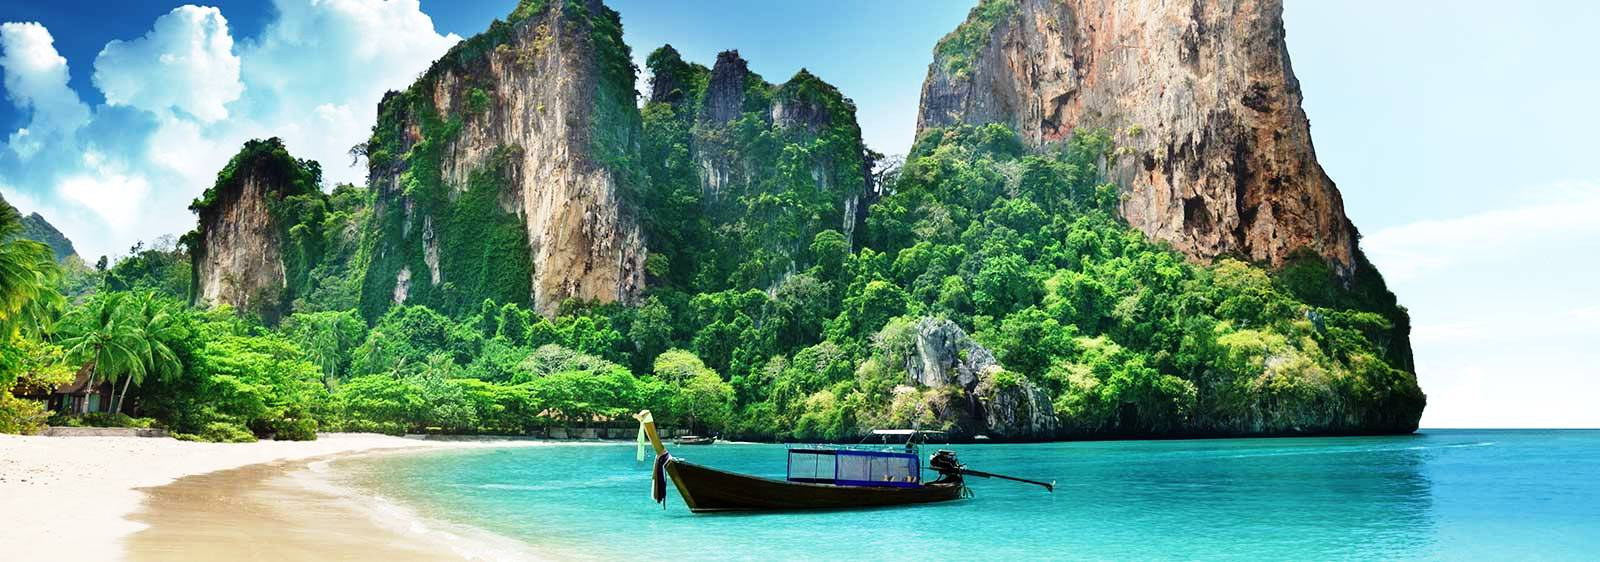 Where Is Andaman Islands Located